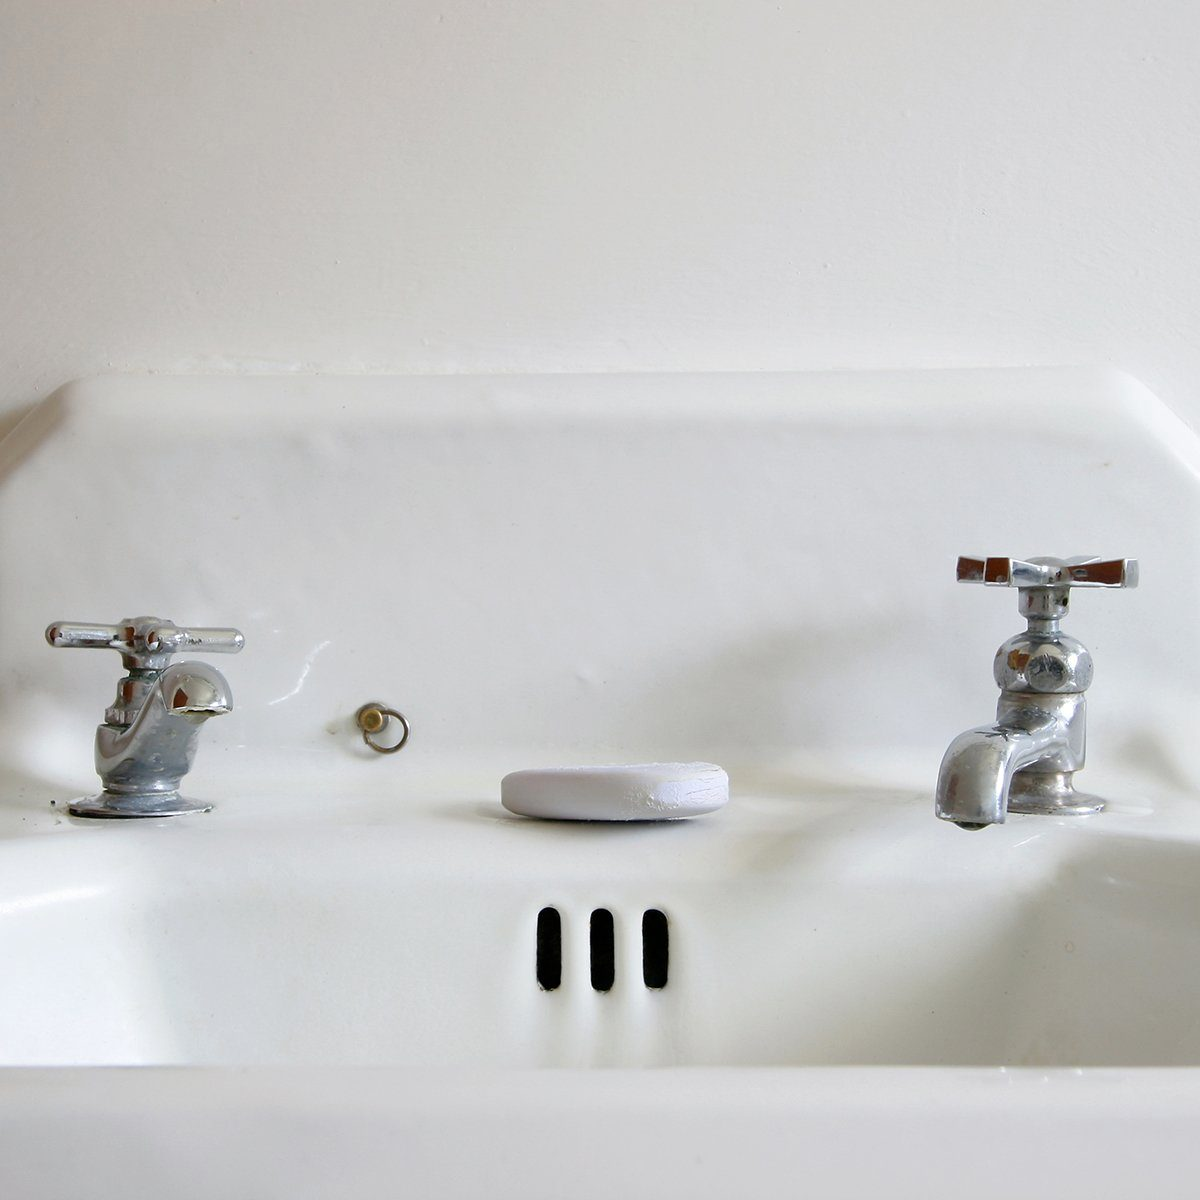 A retro white sink with old fashioned faucets and a bar of soap.